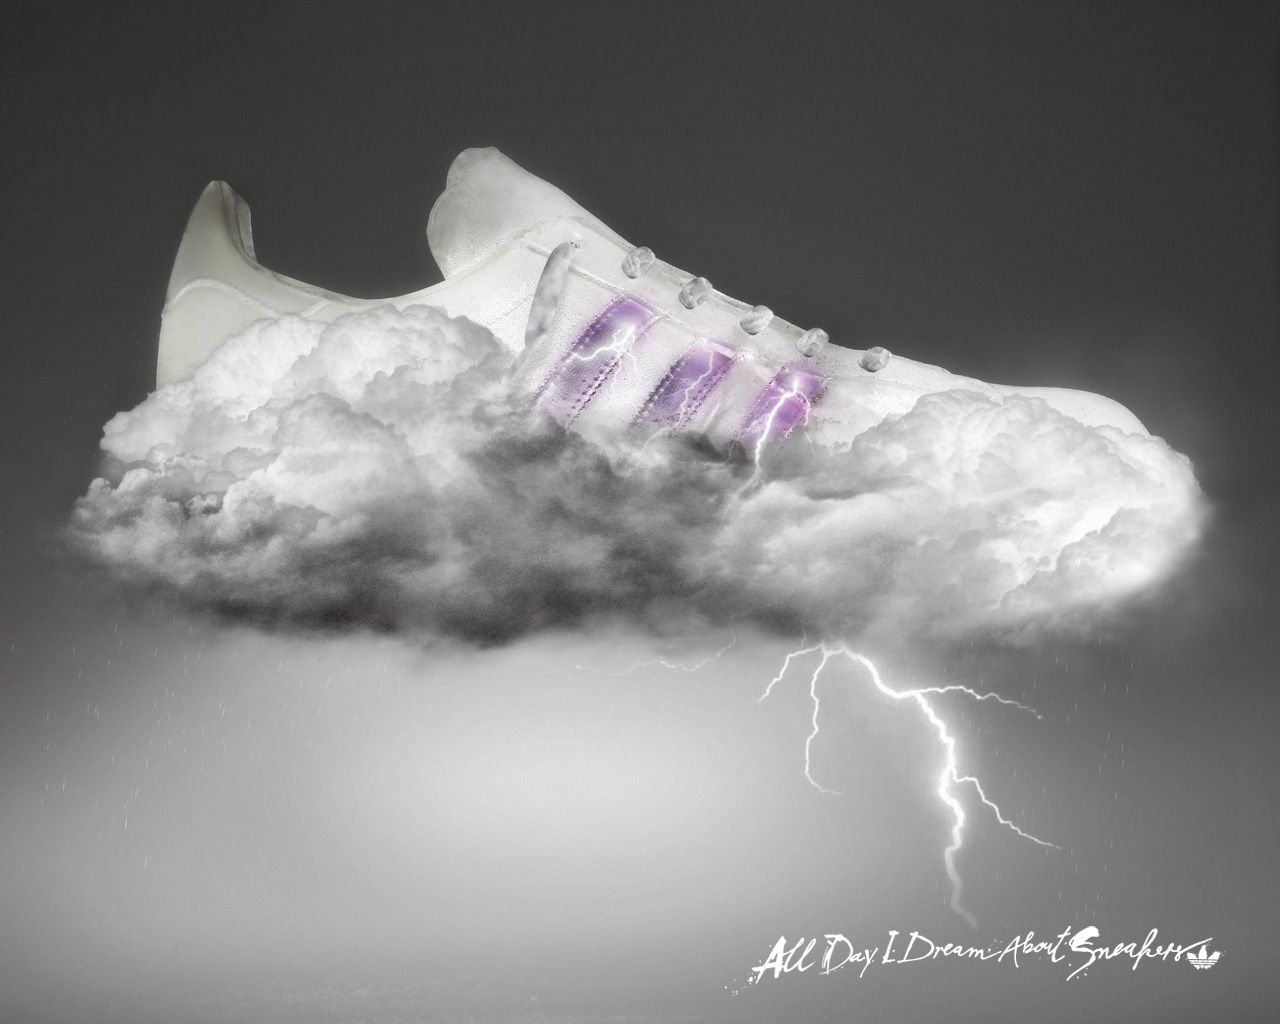 Lifelounge Melbourne I Cloud Dream About Day All Sneakers YgPqSzOO